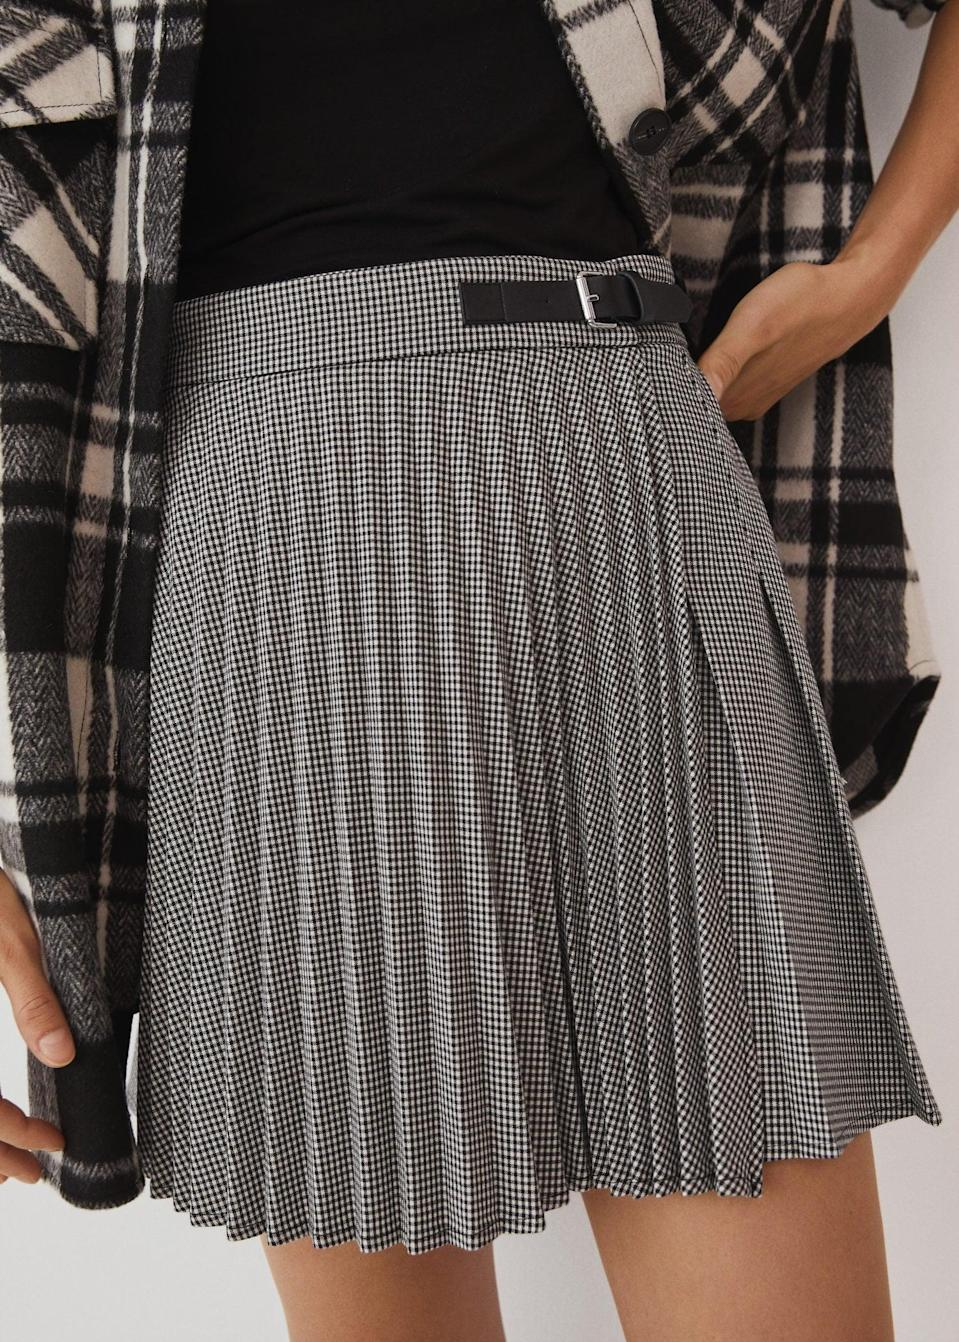 <p>It doesn't get any edgier than a <span>Plaid miniskirt</span> ($50). Style it with chunky sneakers and a short sleeve tee for a cool laid-back vibe.</p>